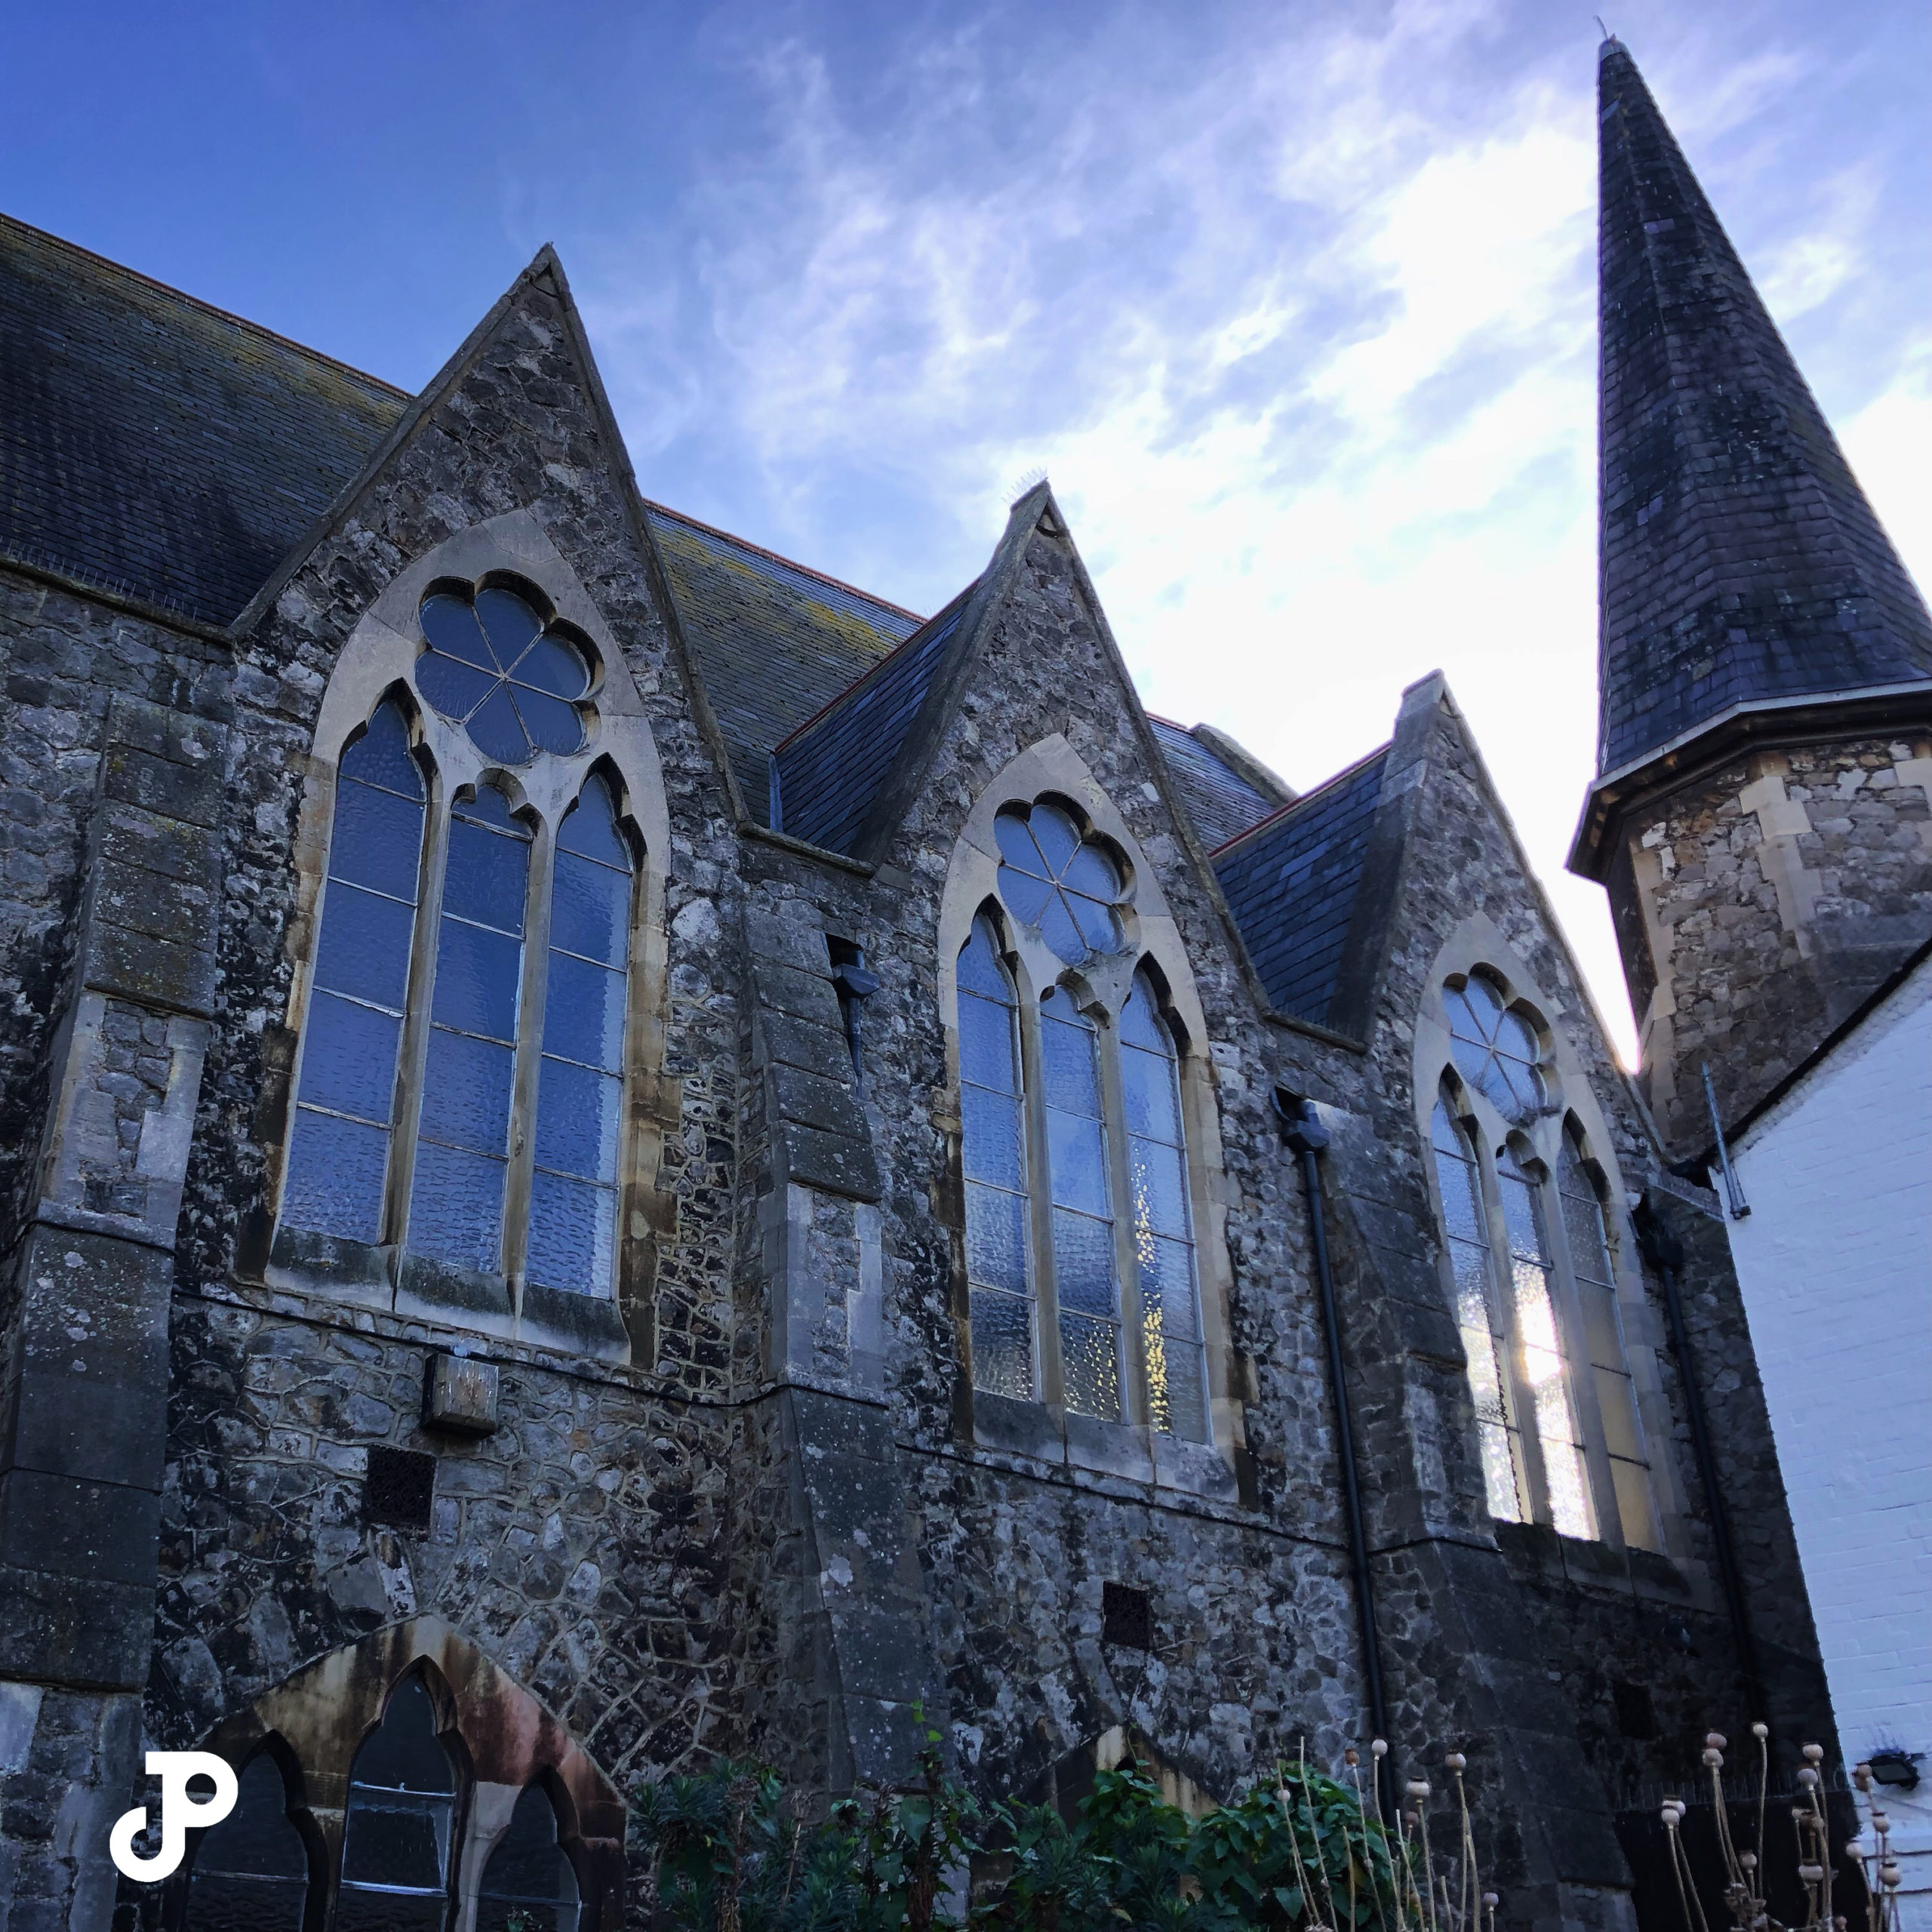 A centuries-old stone church in Kingston Upon Thames, London